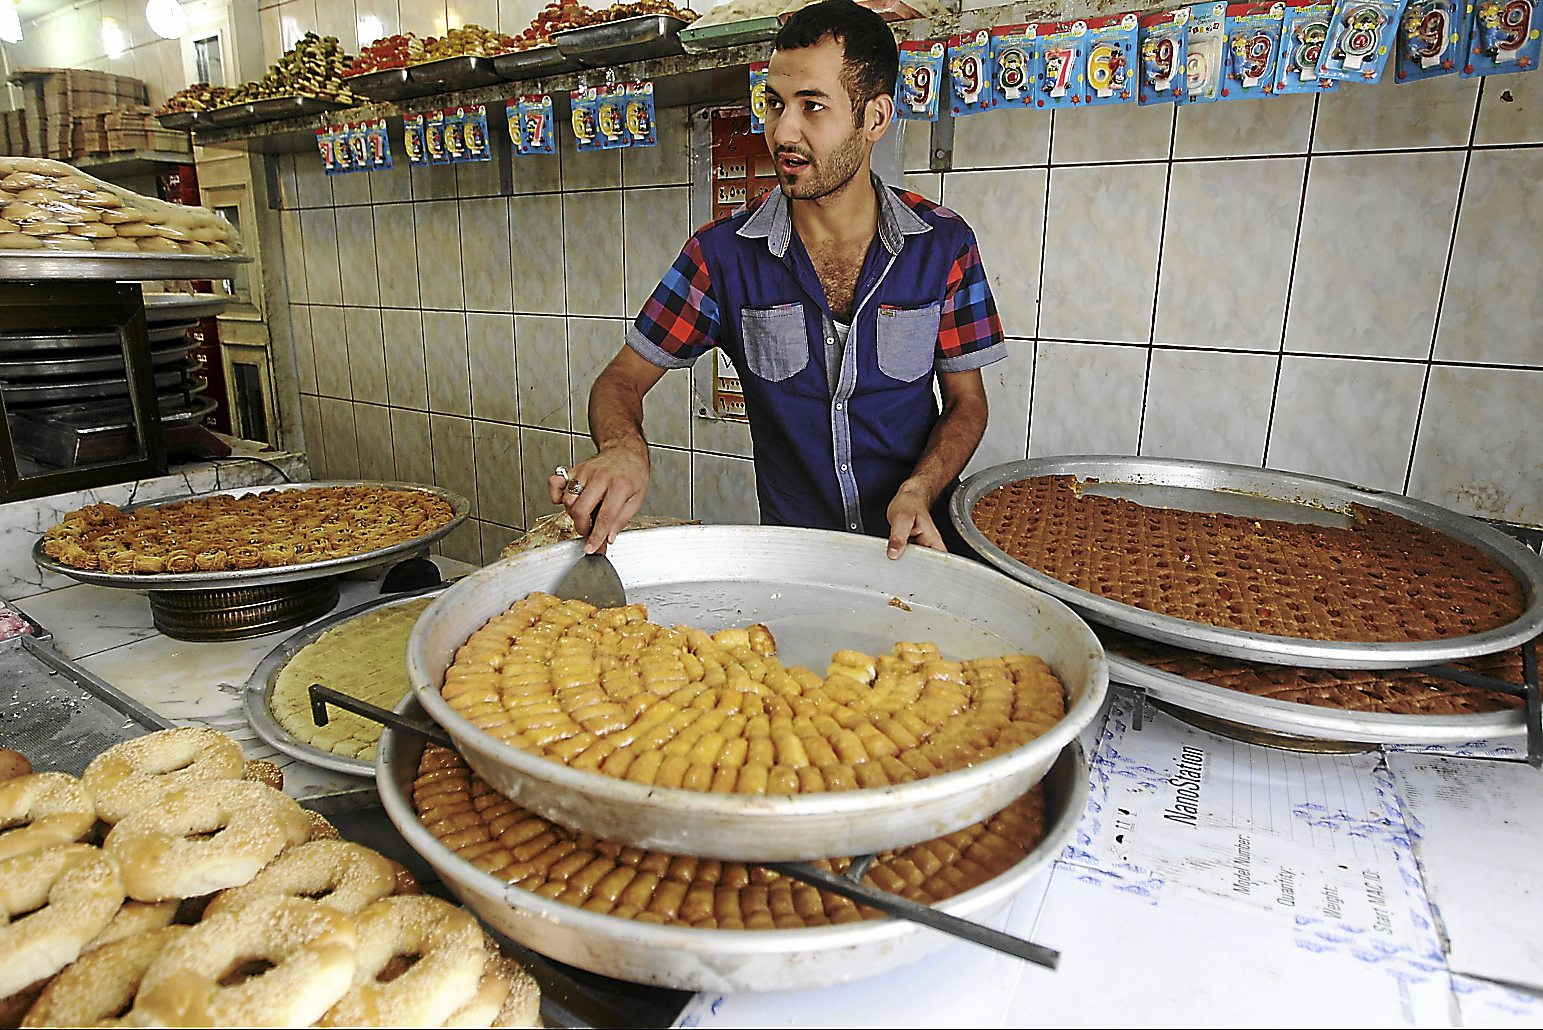 Baklava from Baghdad City: Muslims often break fast with these Arabic sweets. - AFP